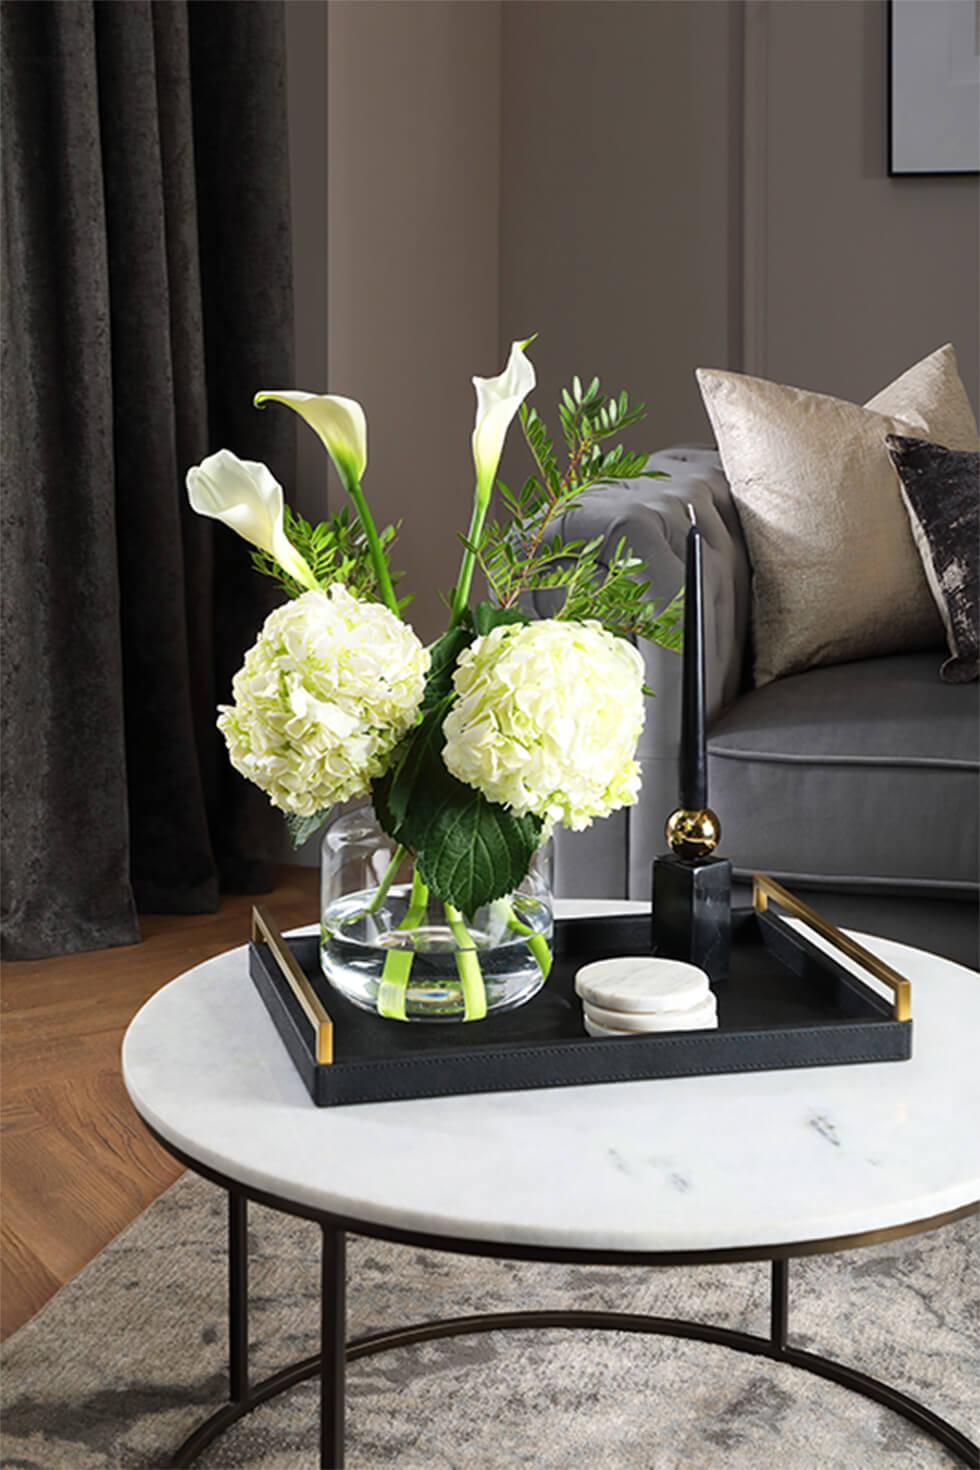 Marble coffee table with dark tray, vase of flowers, candle and marble coasters